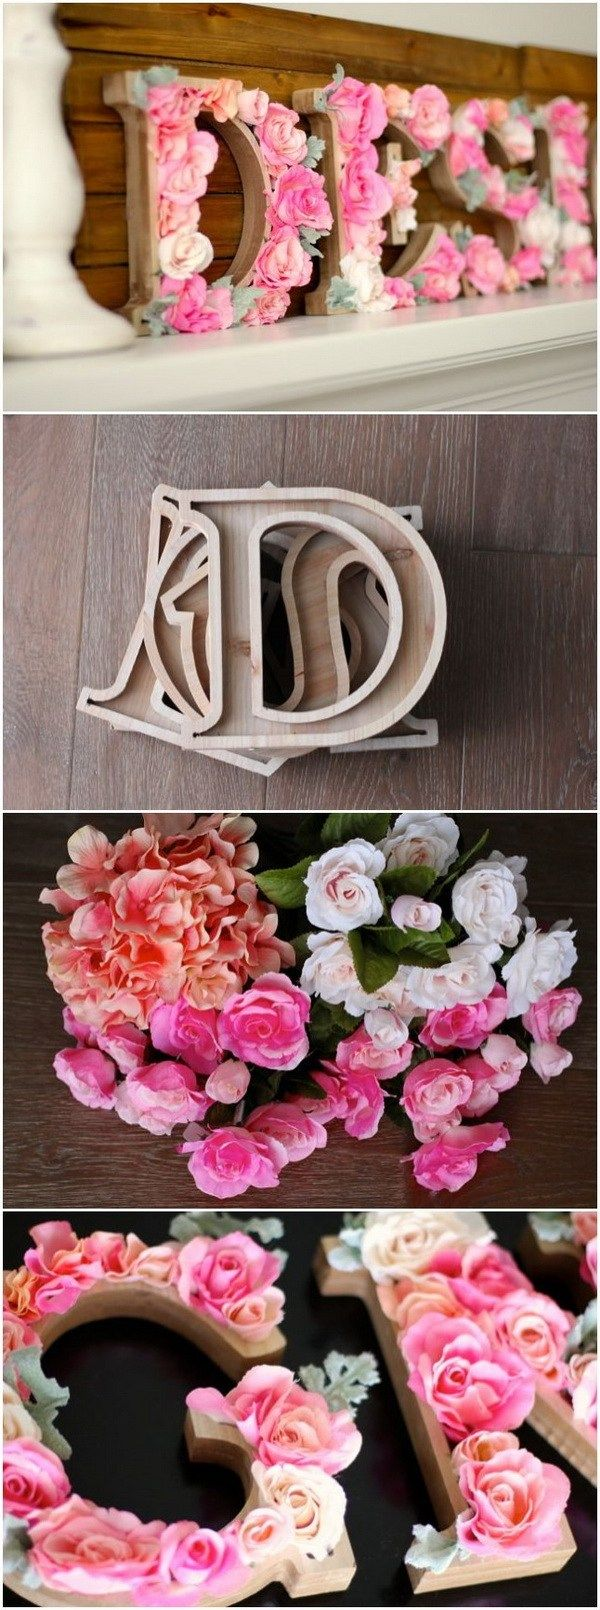 Design Diy Ideas best 25 diy and crafts ideas on pinterest art projects pom cool tutorials for teenage girls bedroom decoration